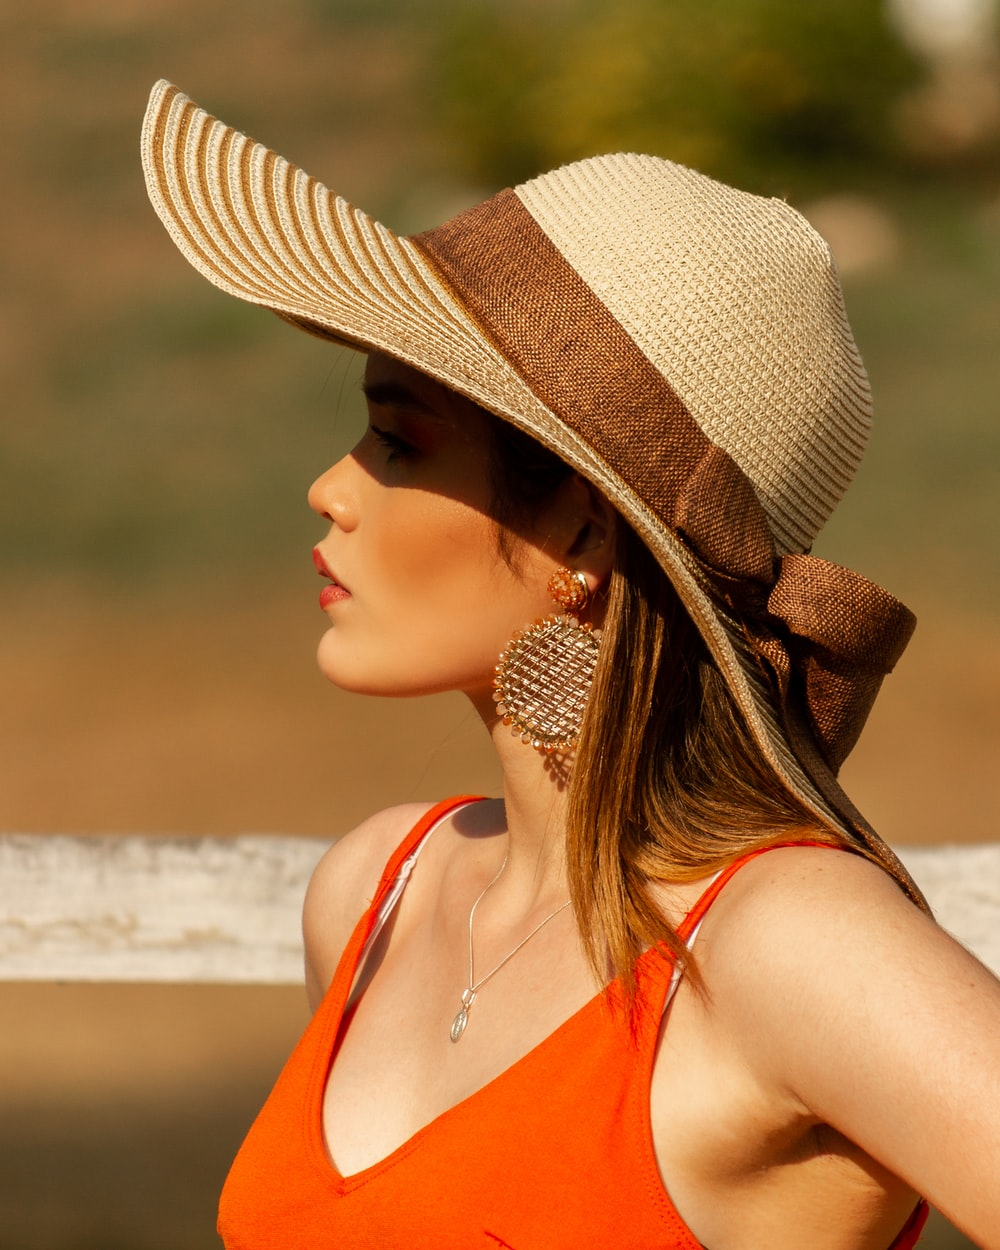 woman in brown and white sun hat and orange tank top